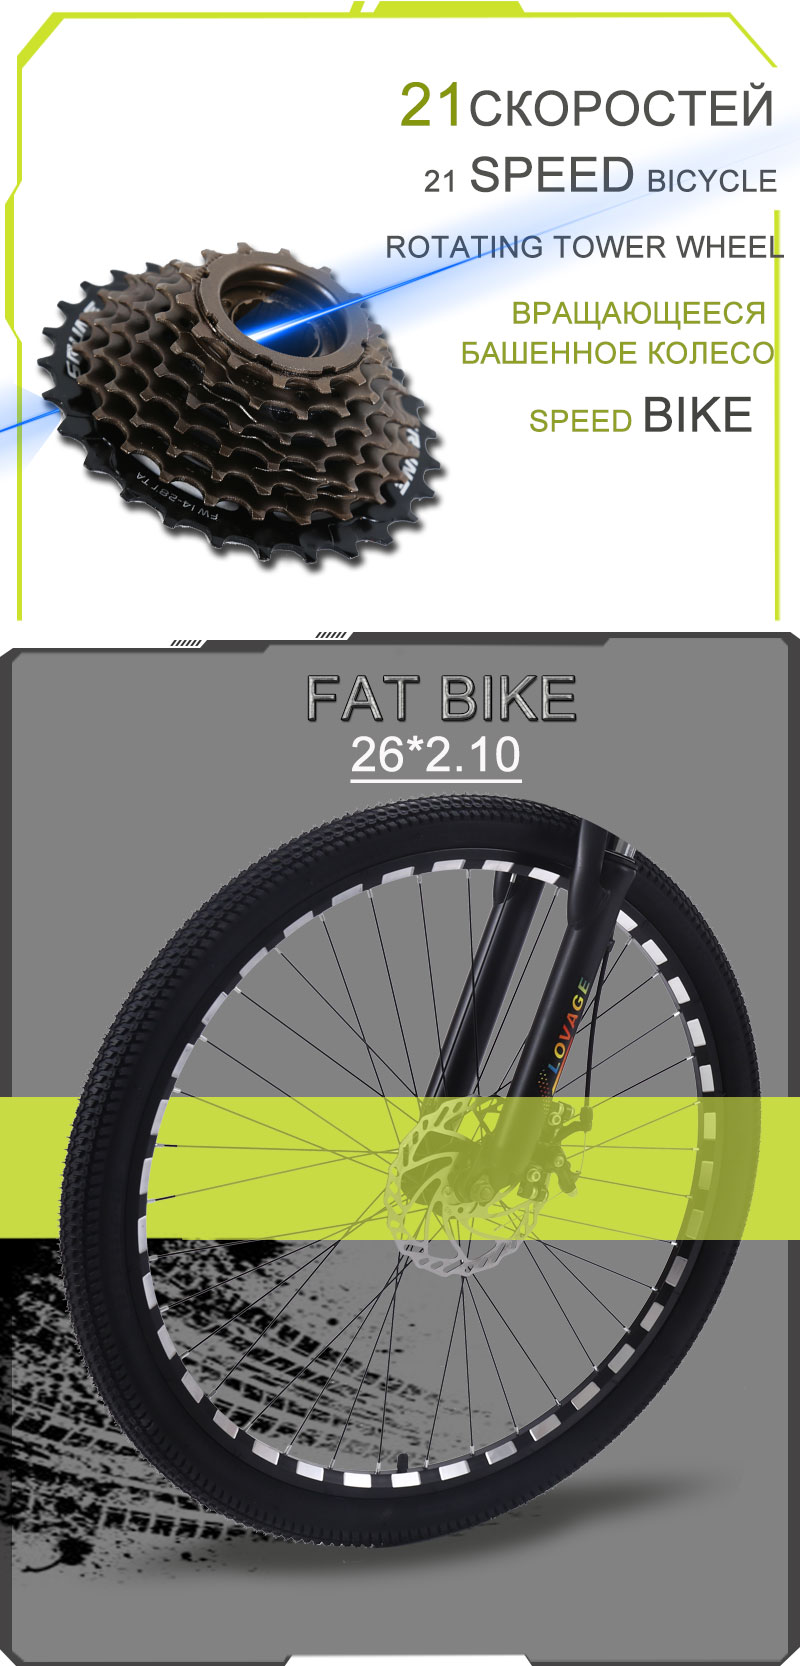 HTB11wd9WmzqK1RjSZFHq6z3CpXa2 wolf's fang New Mountain Bike Bicycle 26 inches 21speed Fat bike Aluminum alloy frame Road bikes Spring Fork Front and Rear